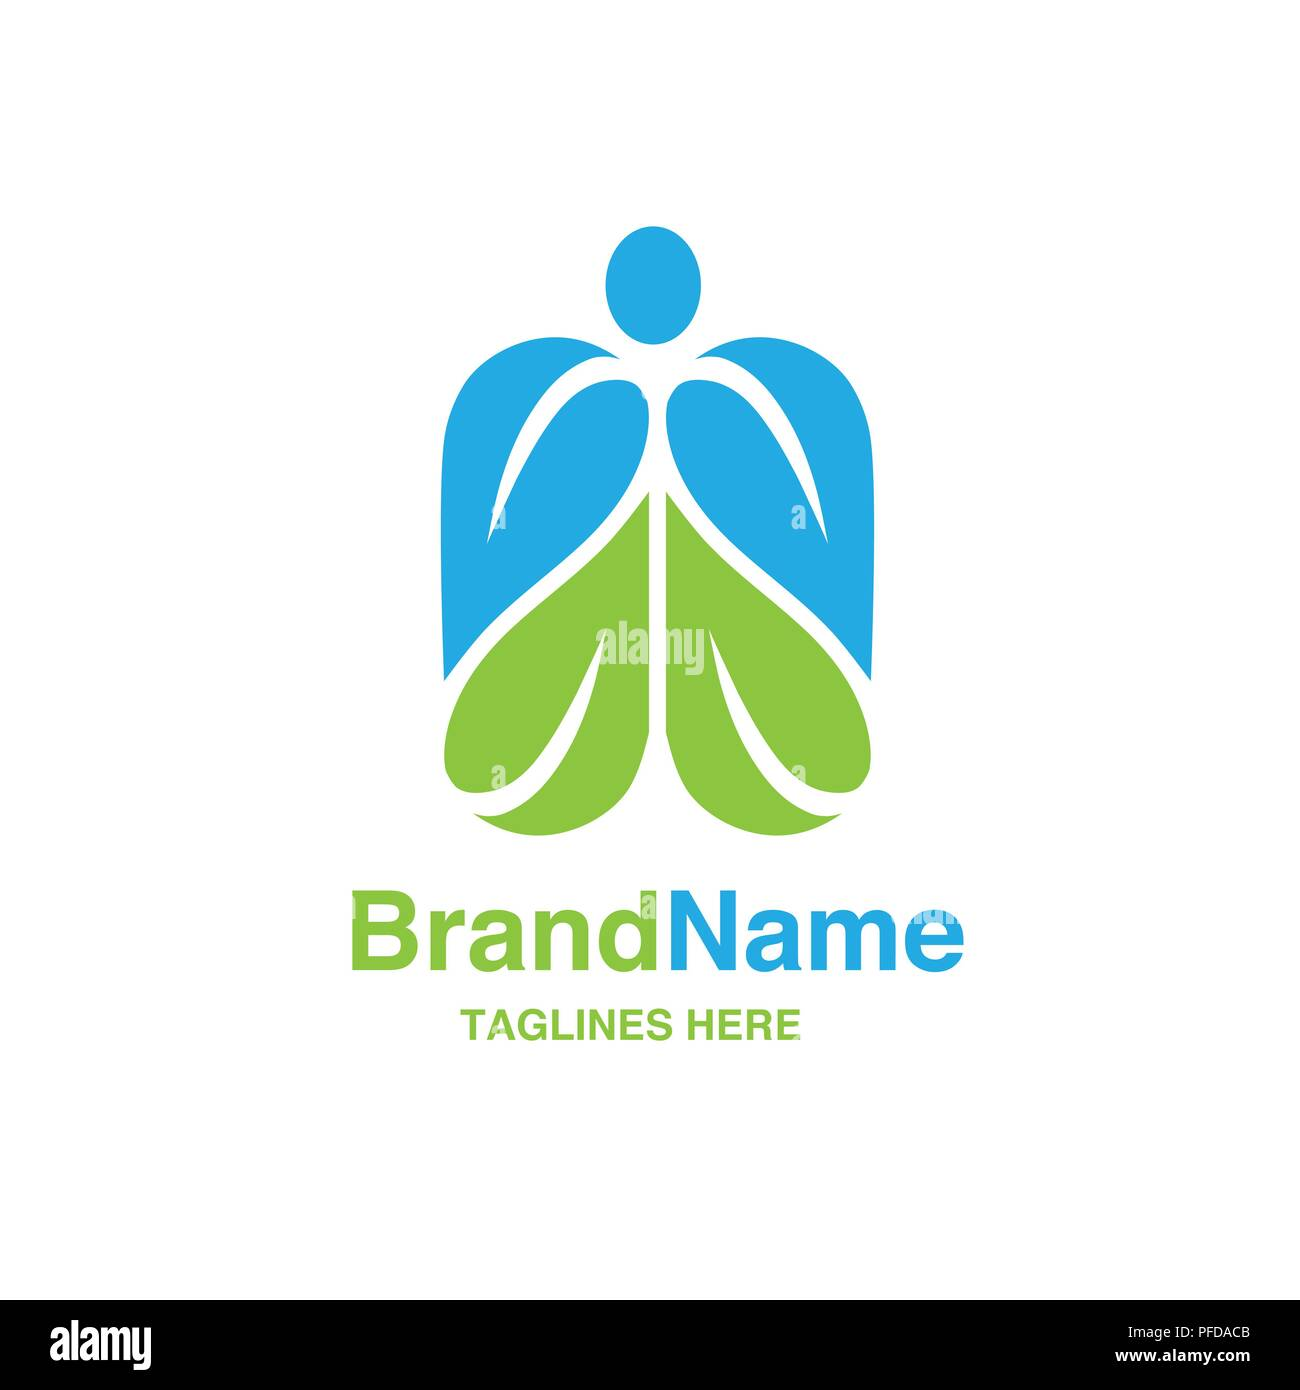 Green Leaf With Shape Of Human Figure Logo Creative Organic Health Food Nutrition And Diet Logo Vector Concept Green Leaf With Shape Of Human Figure Stock Vector Image Art Alamy